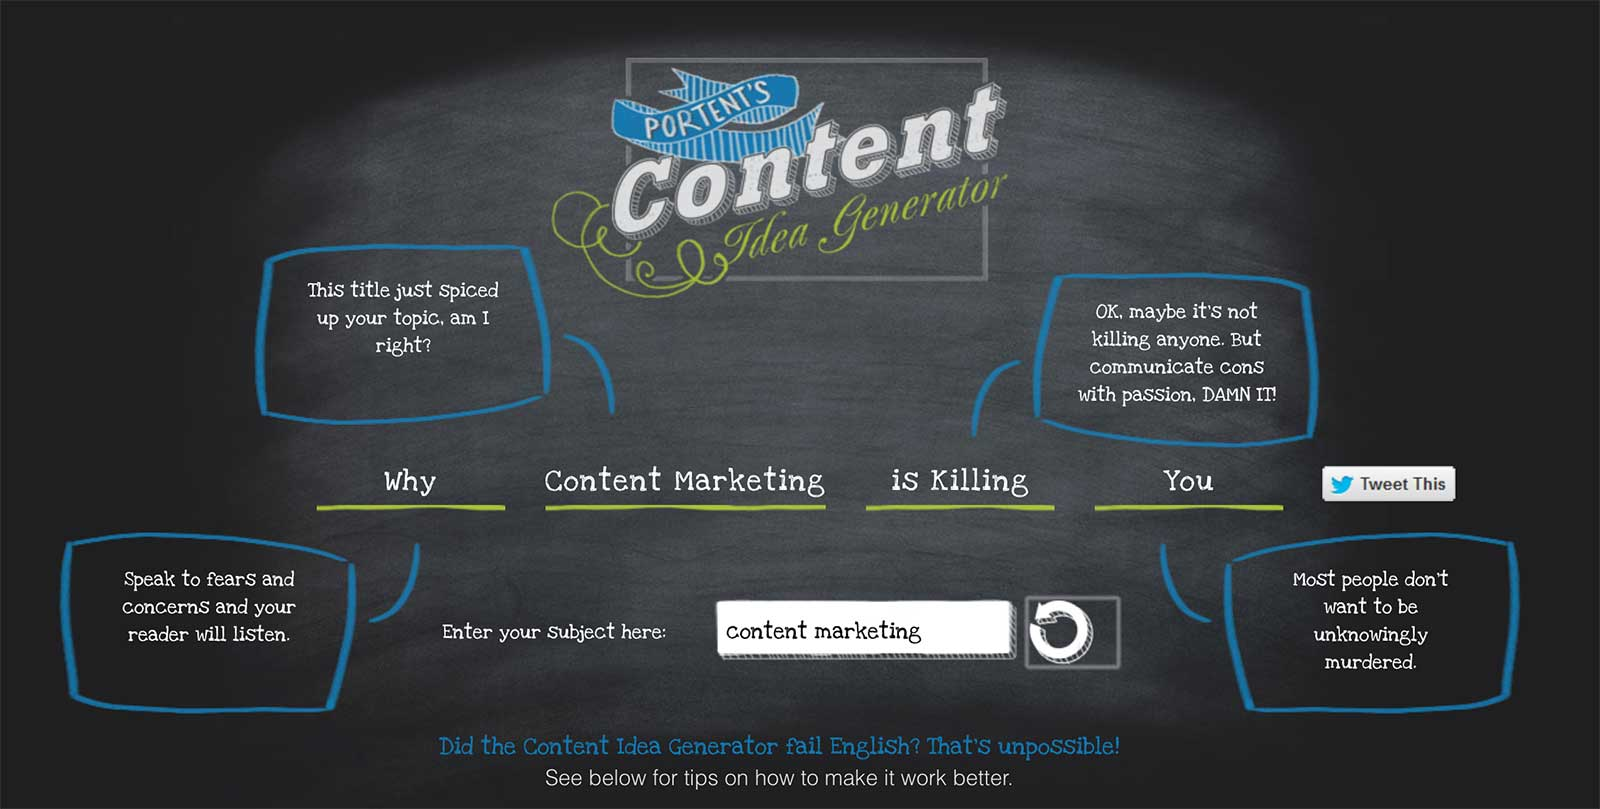 Portent's Content Idea Generator - great for content planning meetings